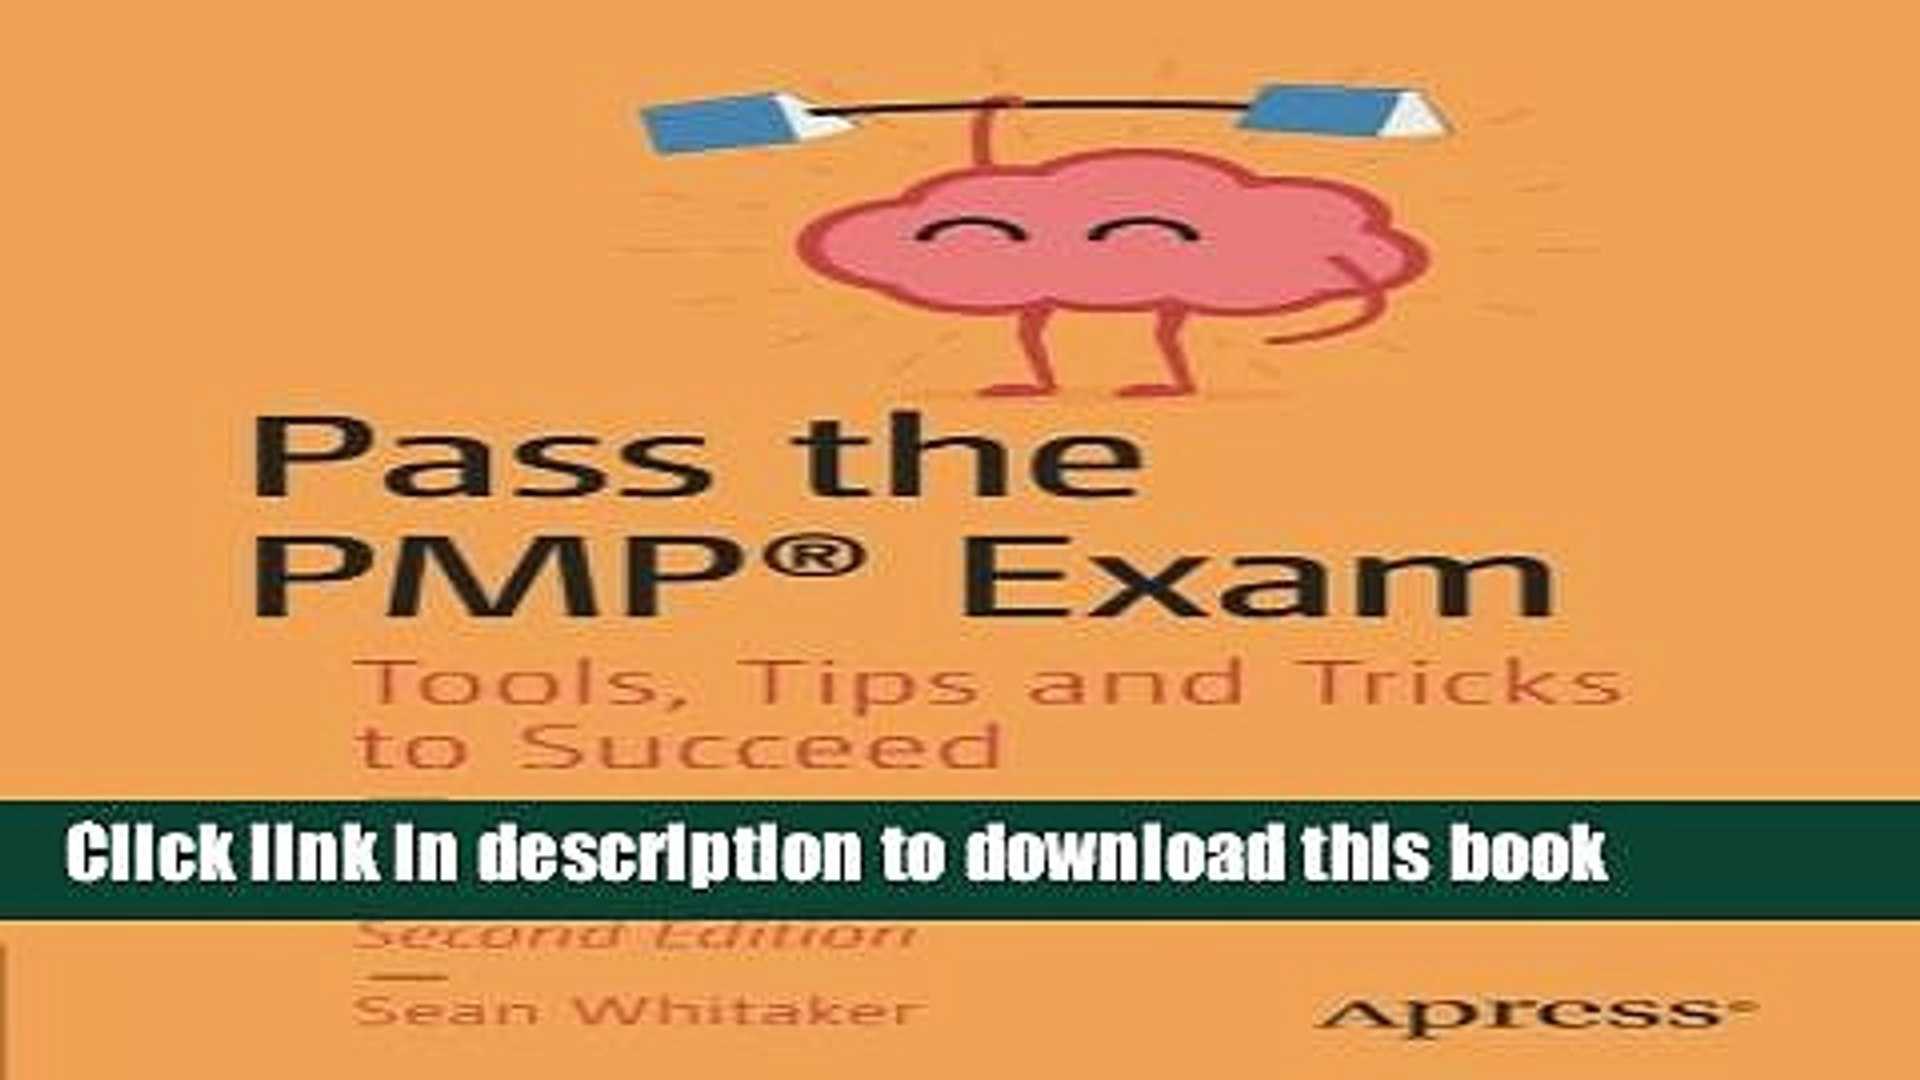 [PDF] Pass the PMP® Exam: Tools, Tips and Tricks to Succeed Read Online